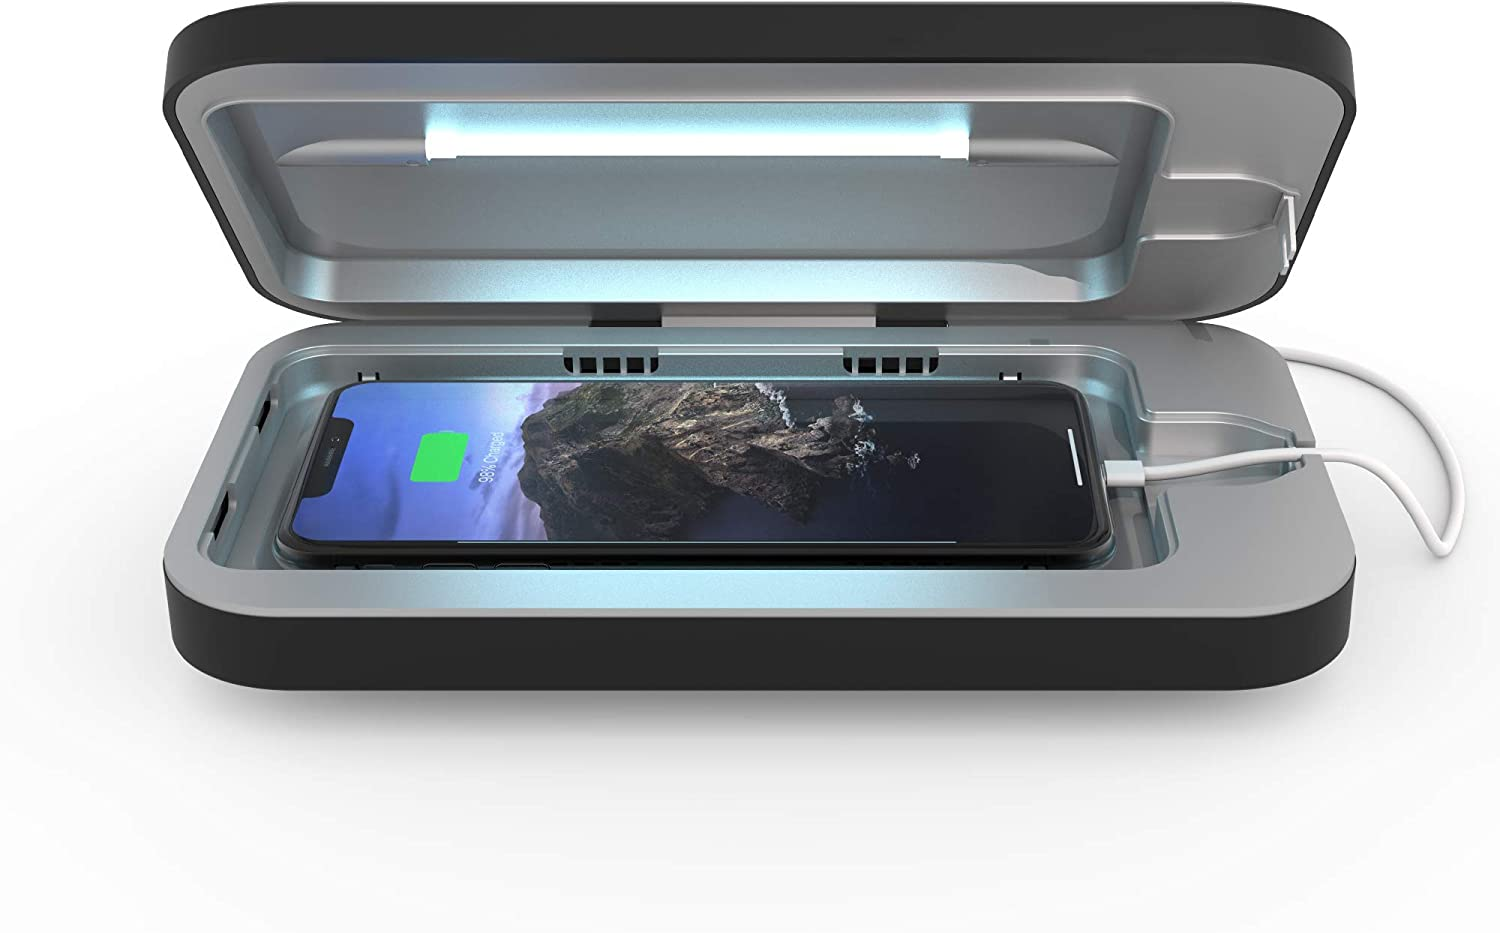 PhoneSoap 3 Dallas Mall UV Cell Phone and Dual Phon Sanitizer Omaha Mall Universal